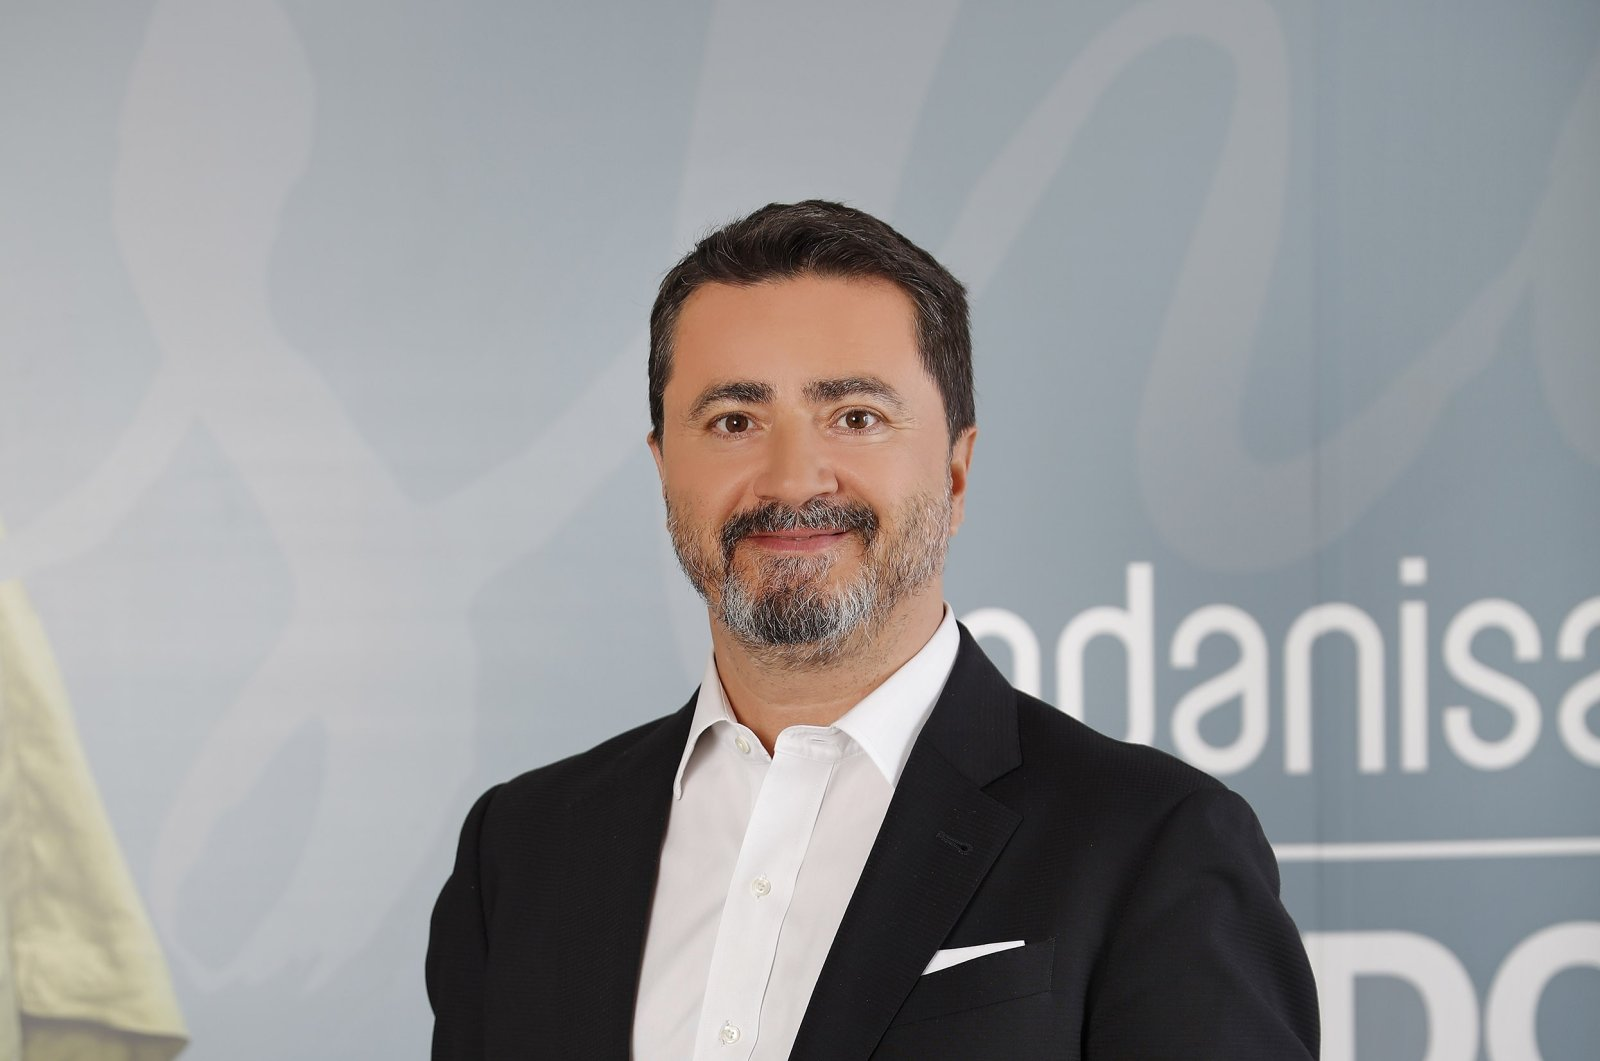 Modanisa Chairperson and CEO Kerim Türe. (IHA Photo)